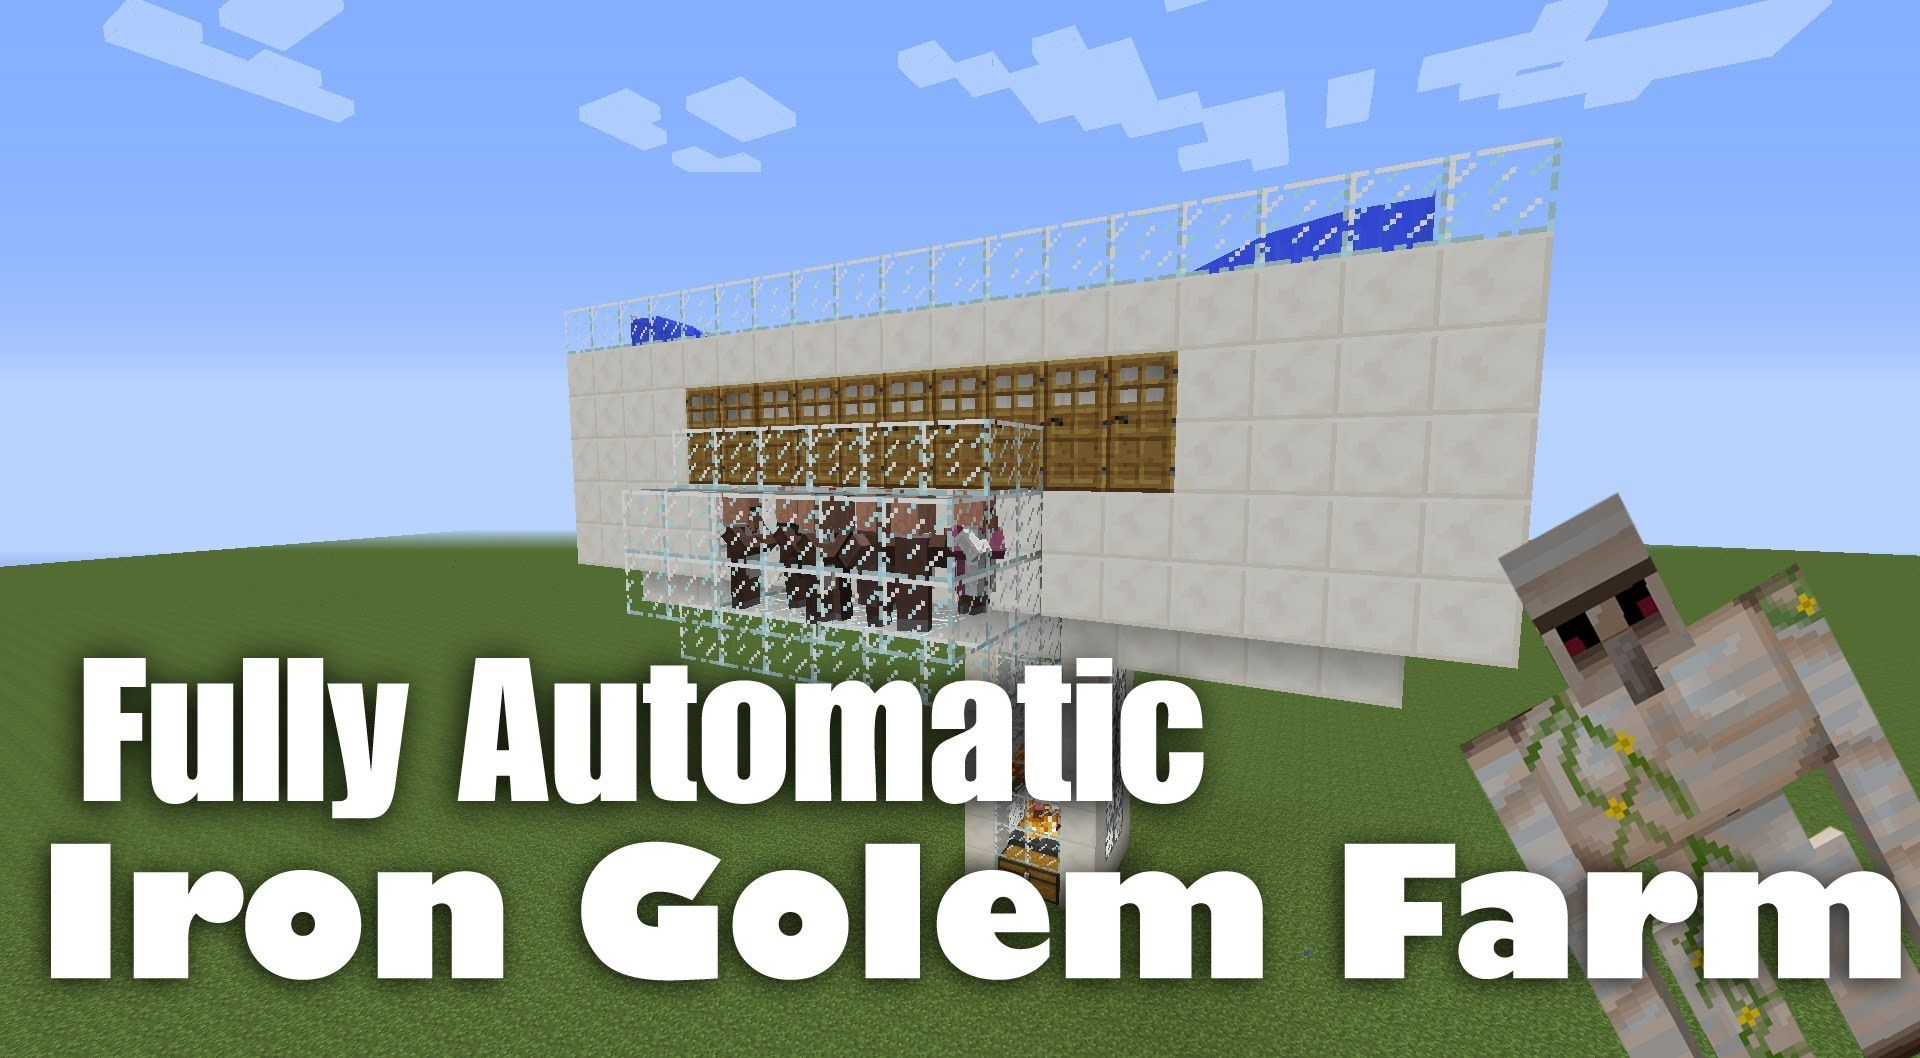 Fully automatic iron golem farm tutorial minecraft 18 a tutorial on how to build a very simple and super efficient iron golem farm this was built in minecraft and ccuart Choice Image